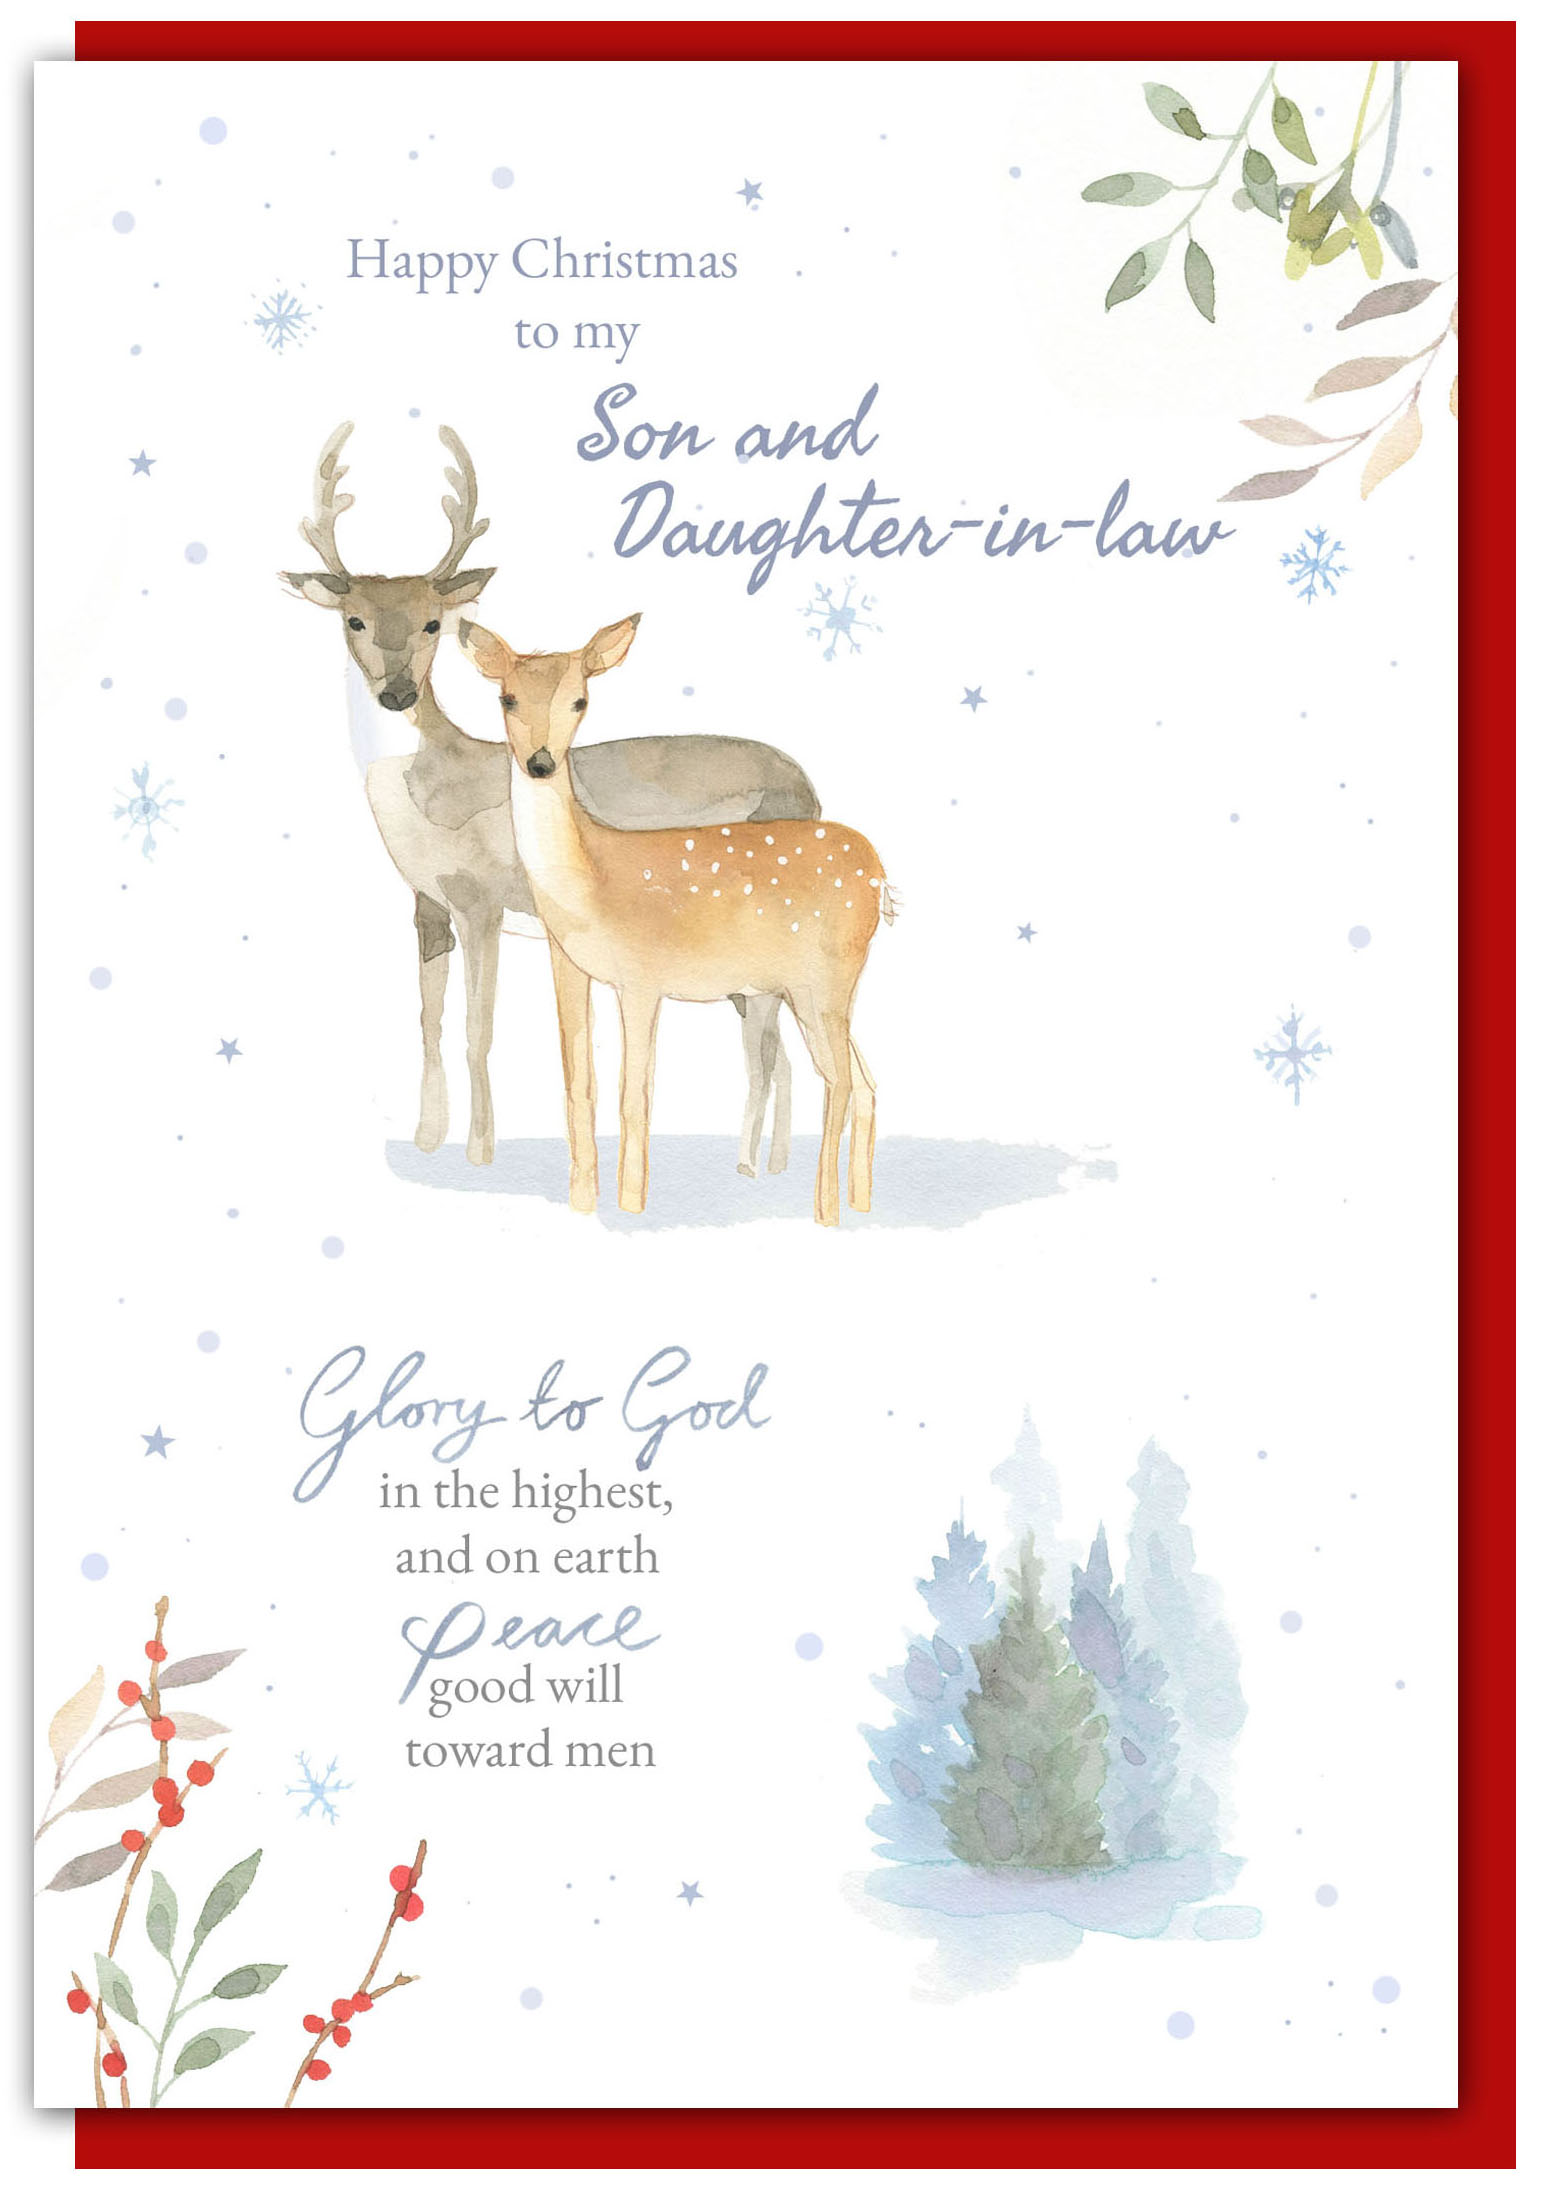 Son Daughter In Law Christmas Card 0604565252487 Fast Delivery At Eden